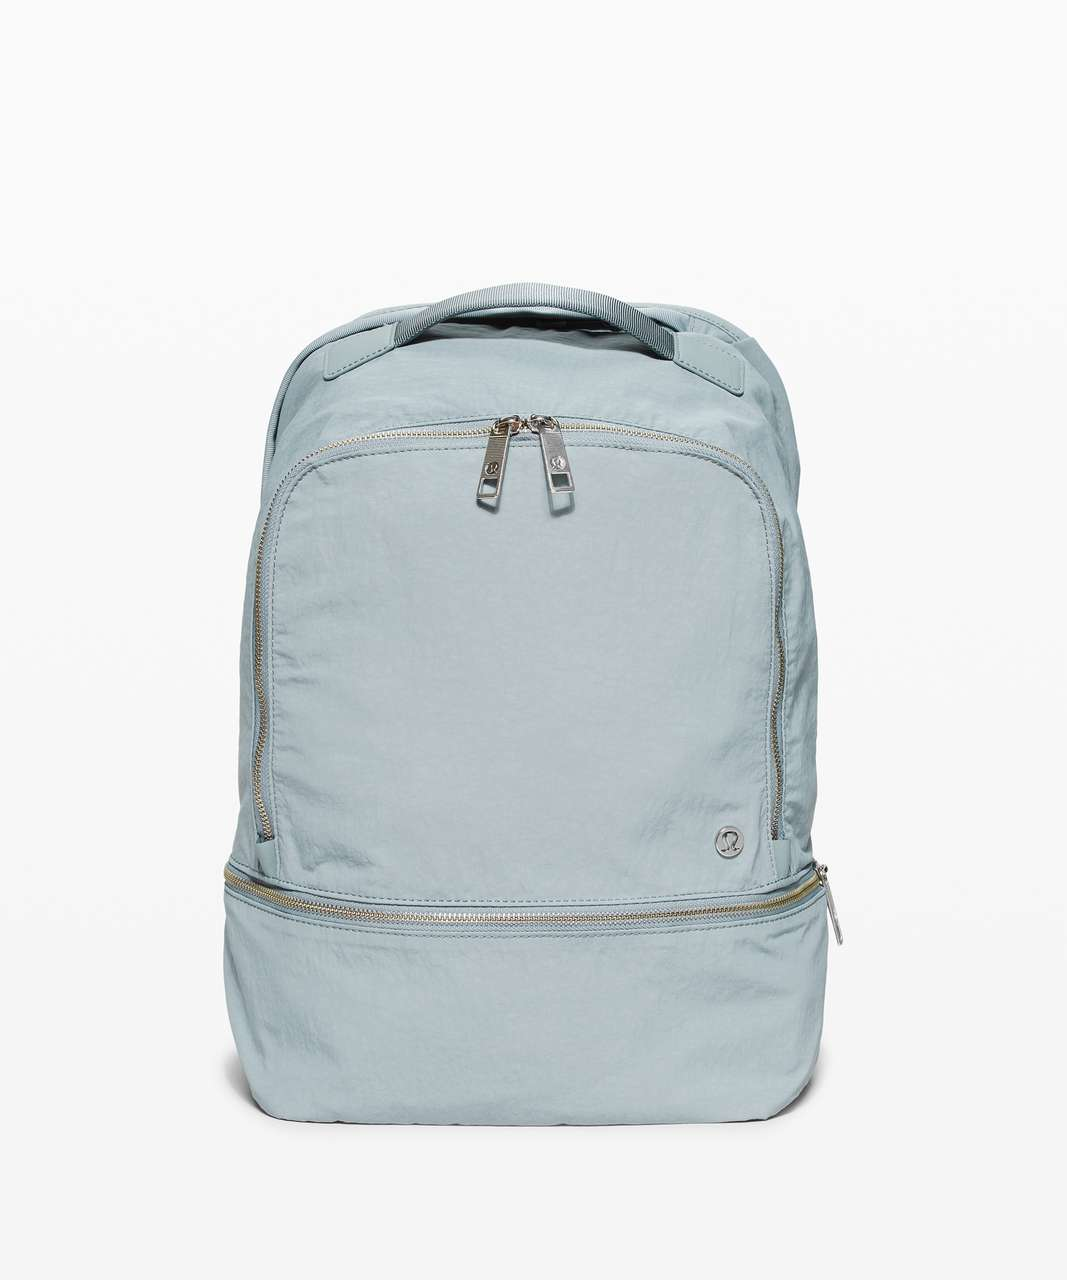 Lululemon City Adventurer Backpack *17L - Blue Cast